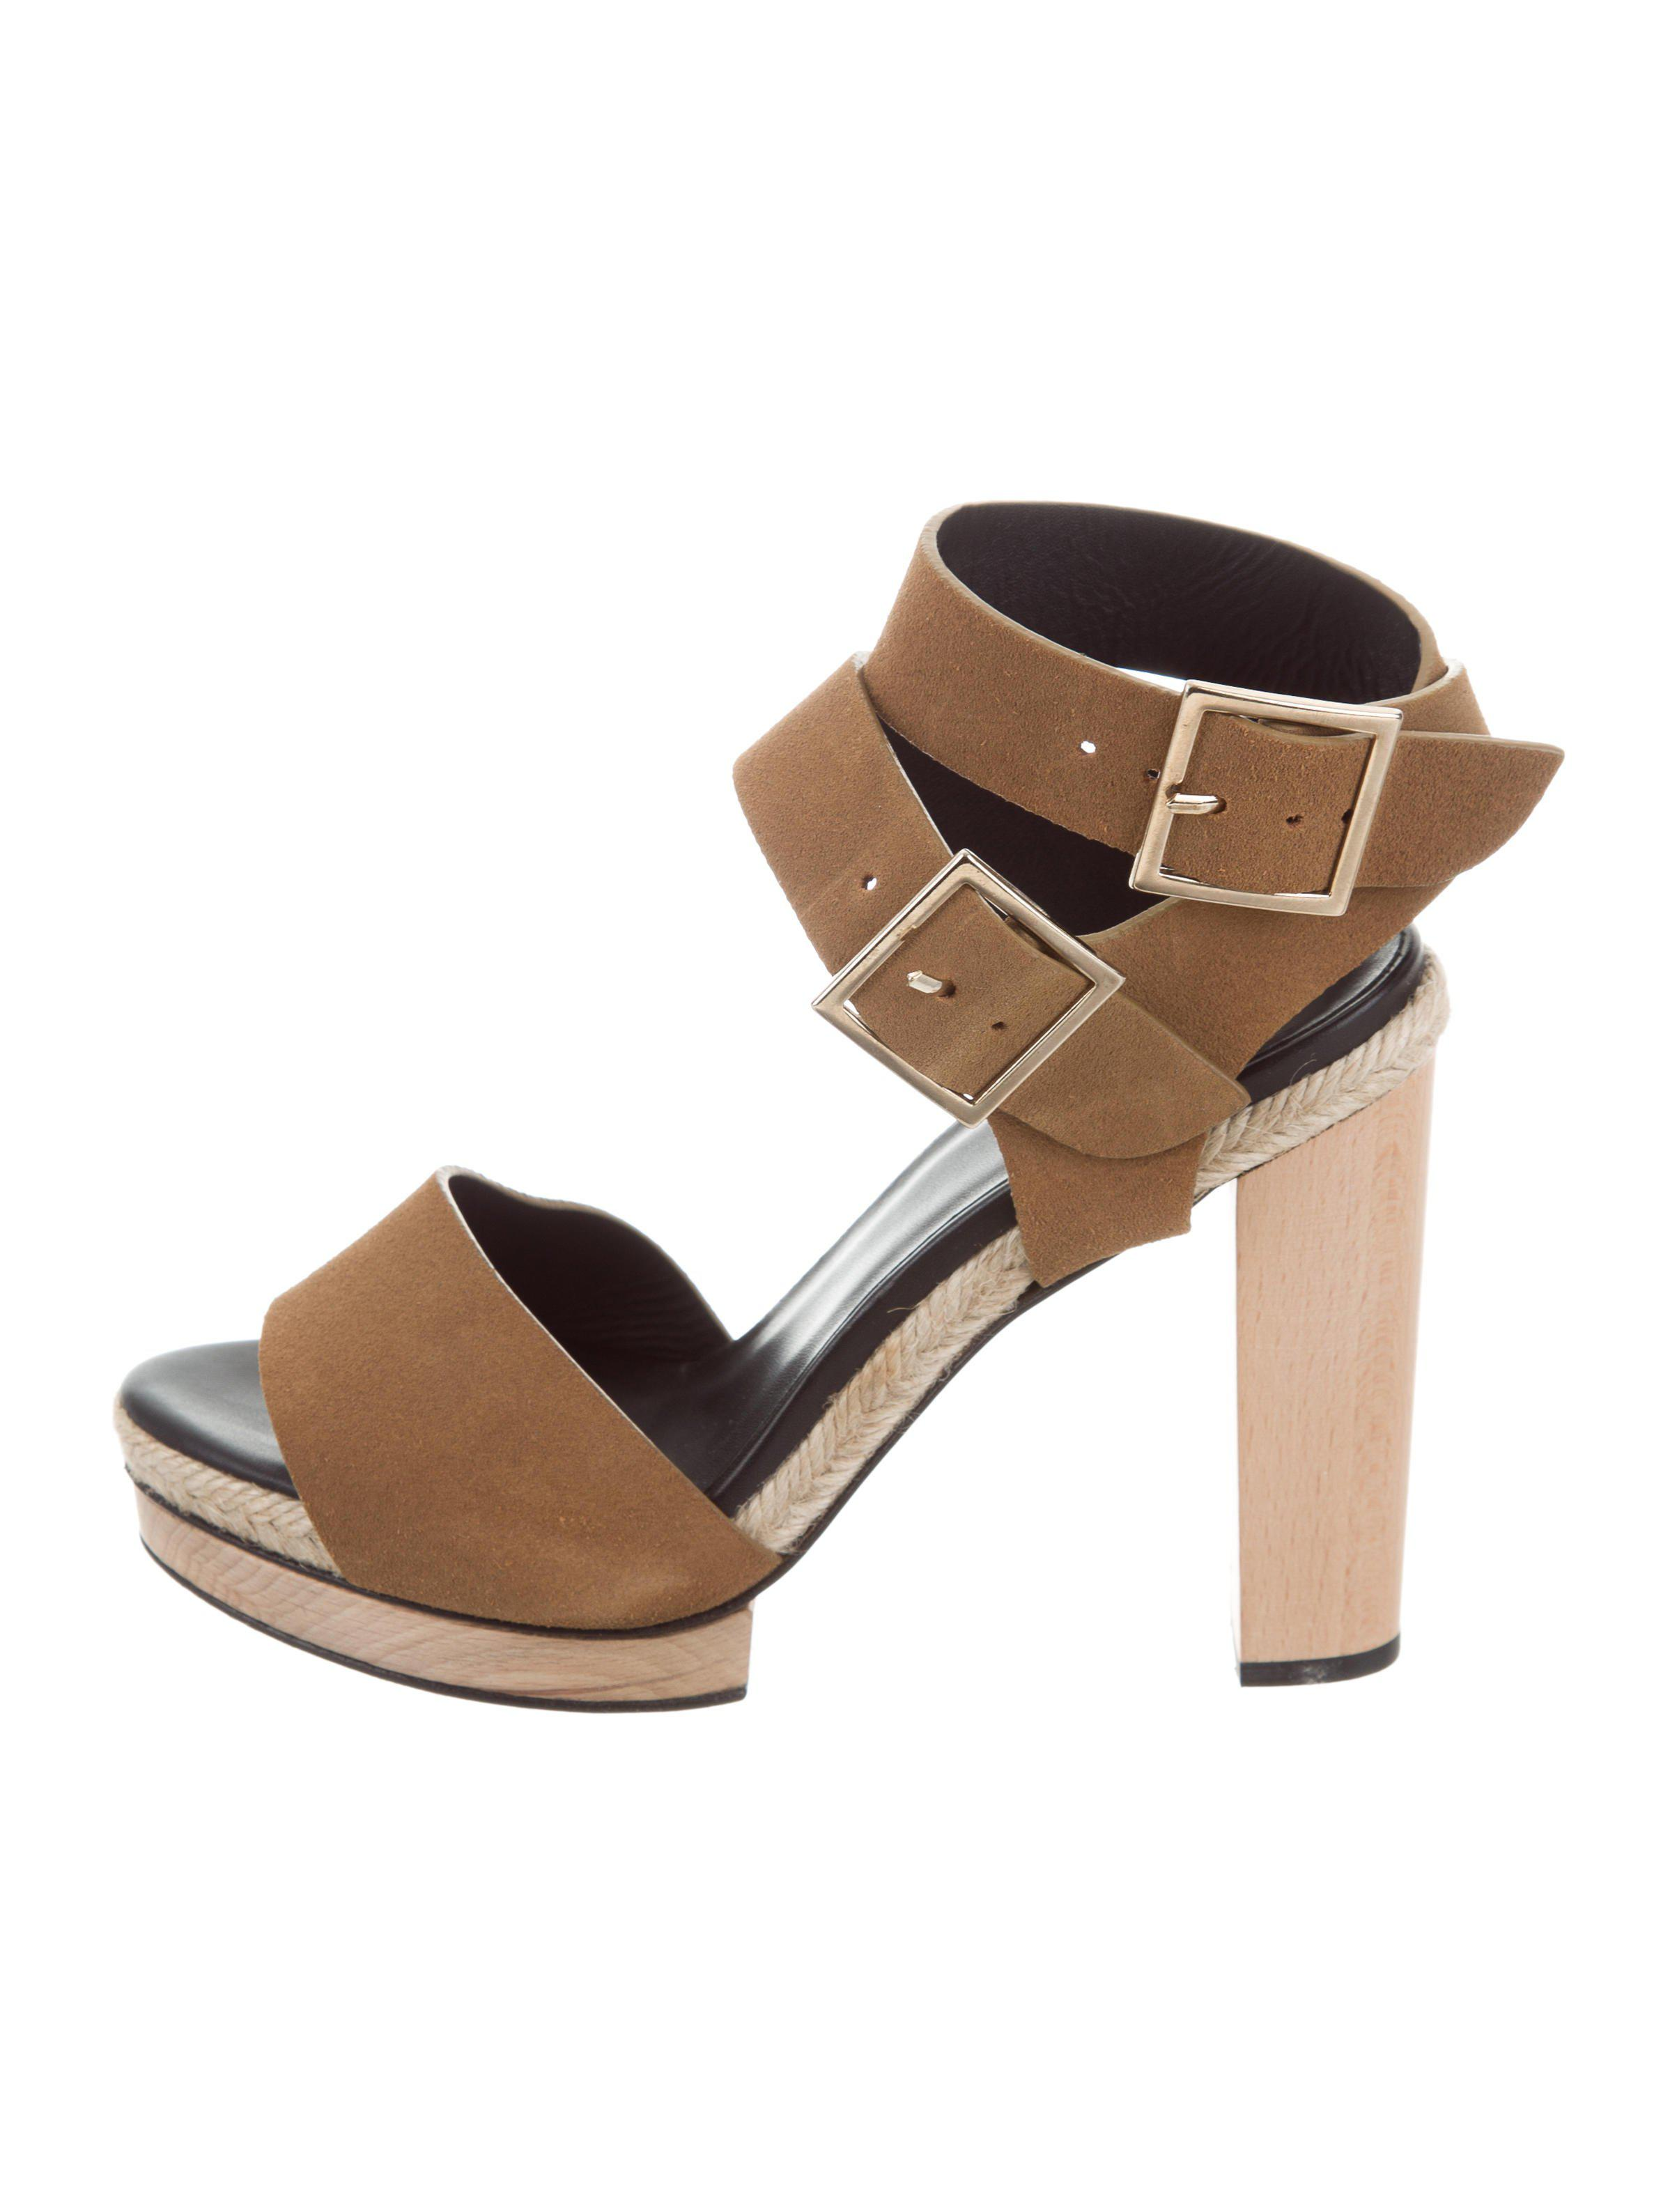 11918752302 Lyst - Pierre Hardy Suede Buckle Sandals Tan in Natural